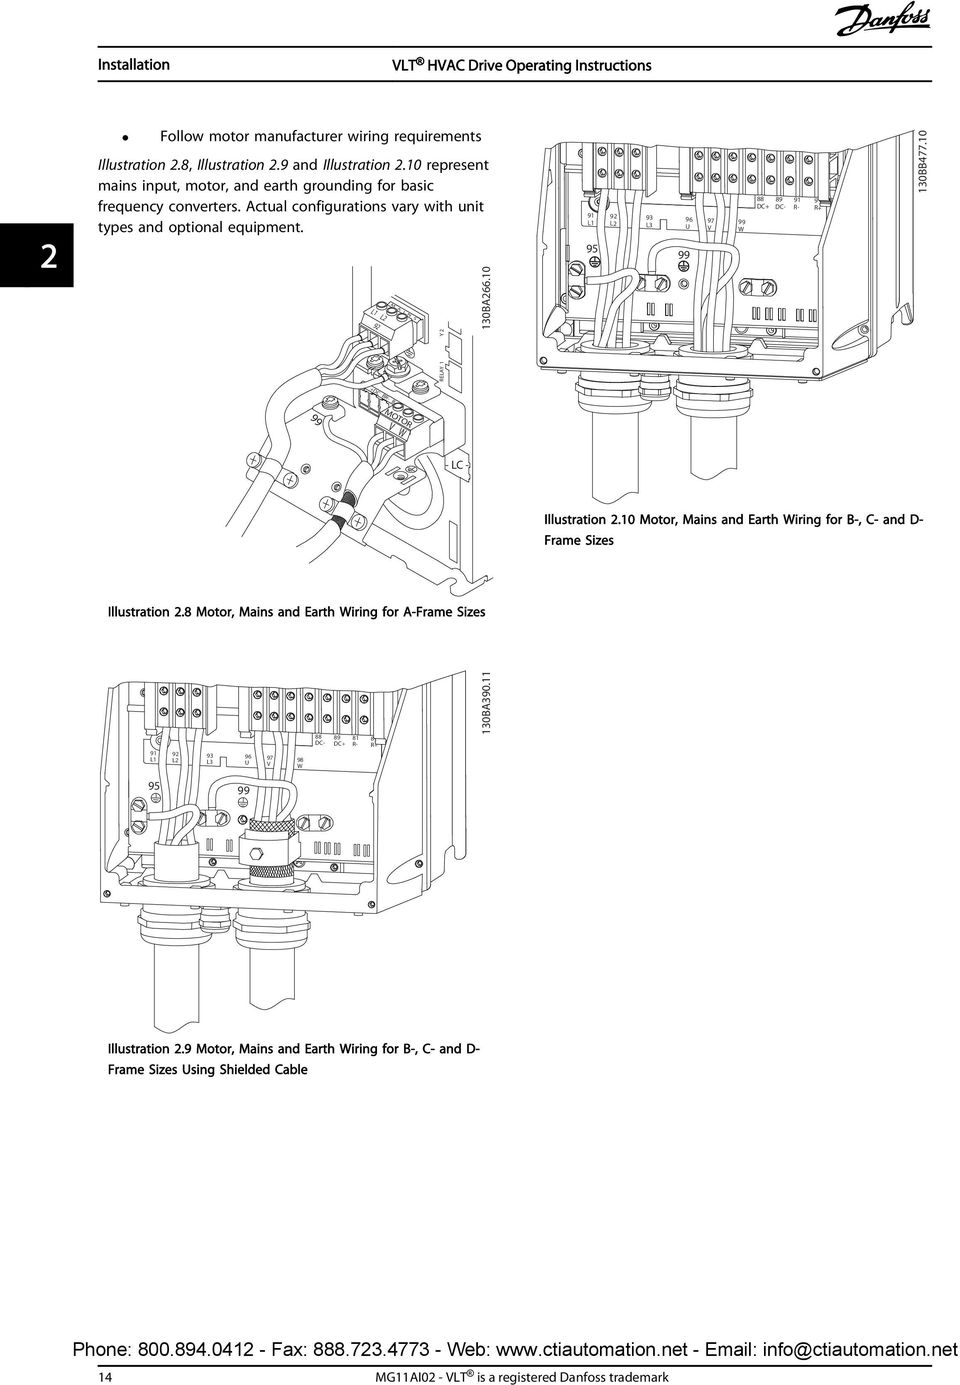 operating instructions  vlt hvac drive fc 102  kw